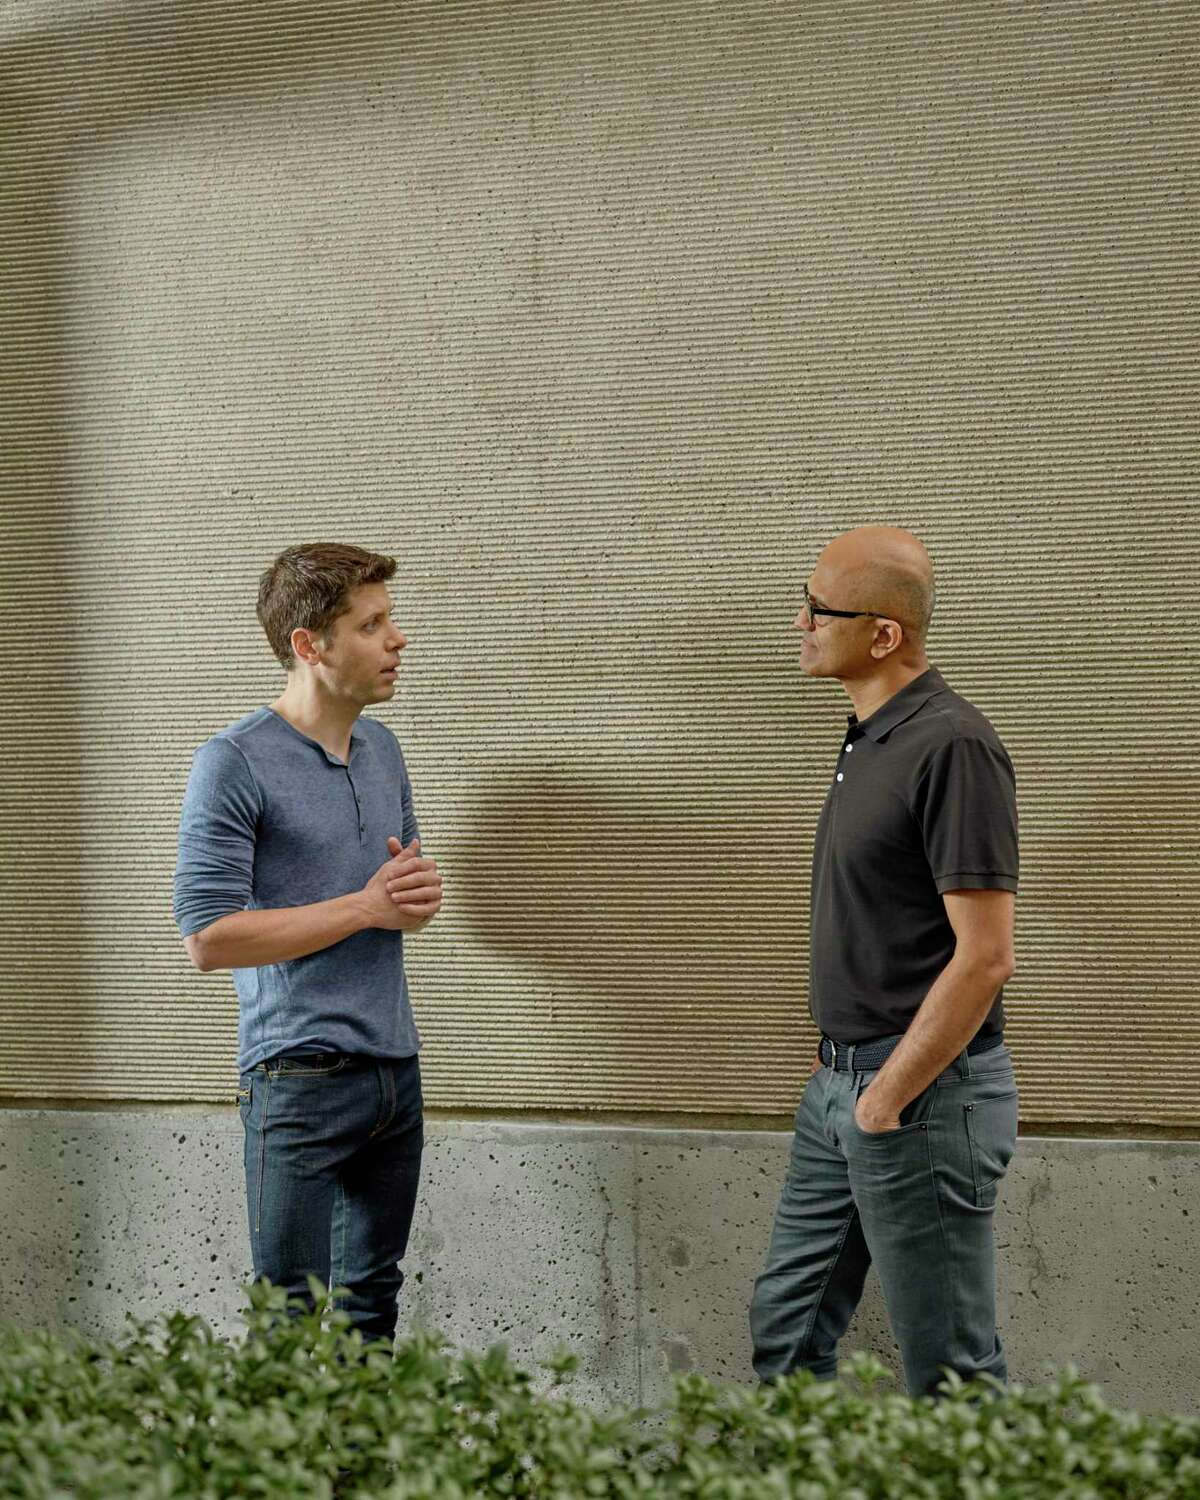 In 2019, Sam Altman (left) who manages the company OpenAI, talks with Satya Nadella, the chief executive of Microsoft, which is investing $1 billion in OpenAI, at the Microsoft Campus in Redmond, Wash. OpenAI's mission is to create a machine that can do what the human brain can do.